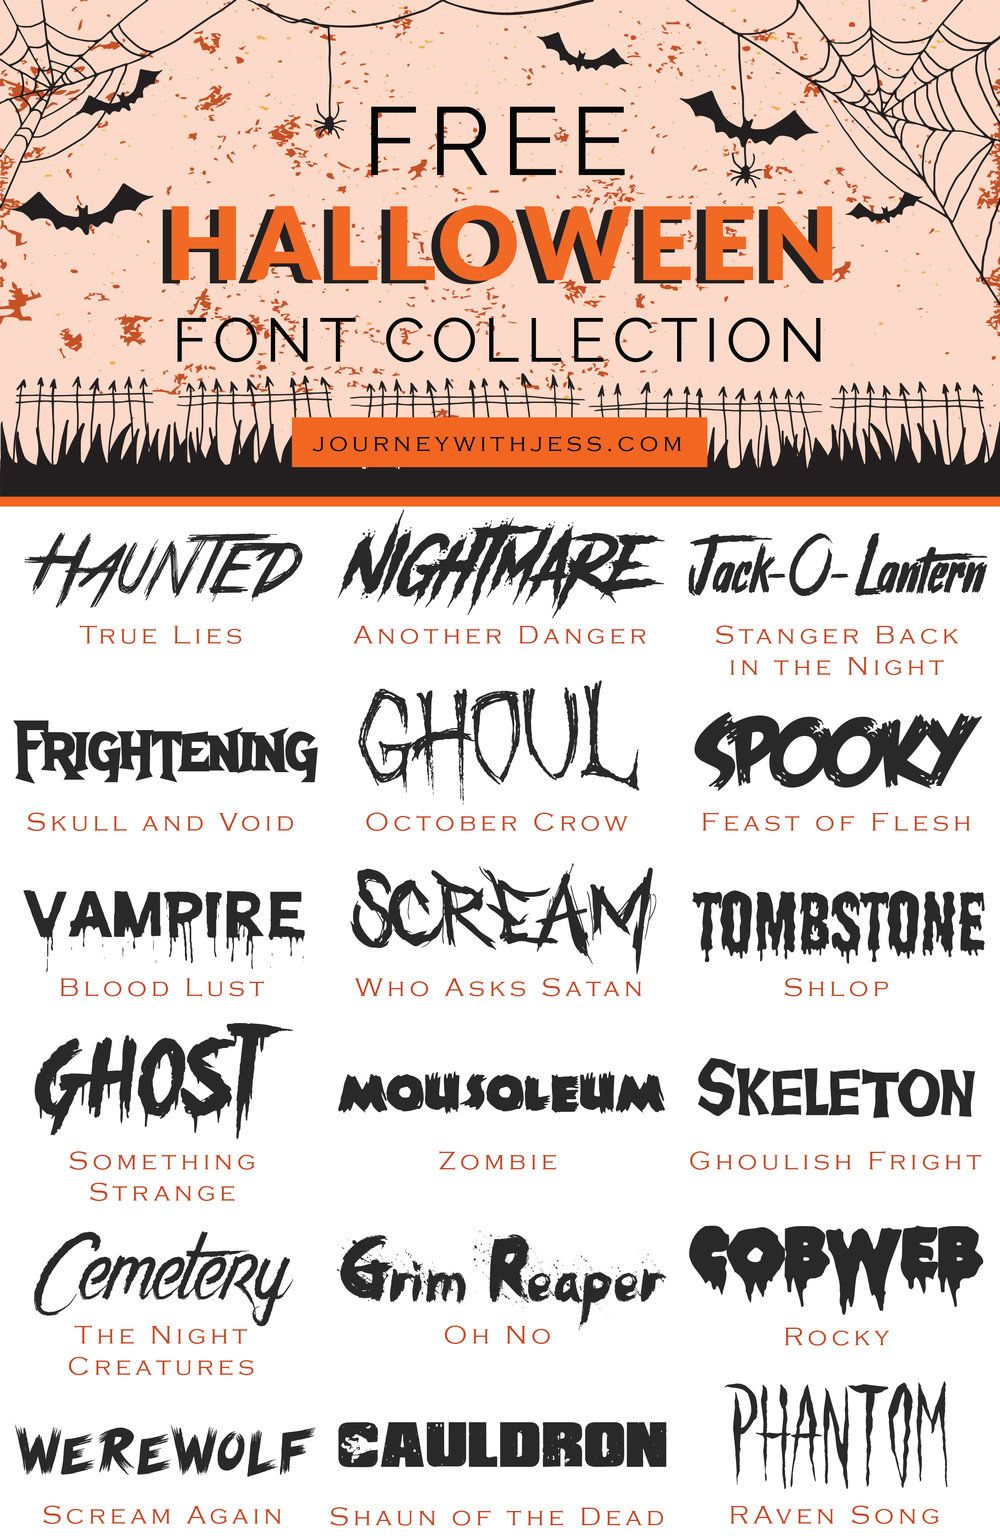 2020 Halloween Font Free Font Collection: Halloween Fonts — Journey With Jess